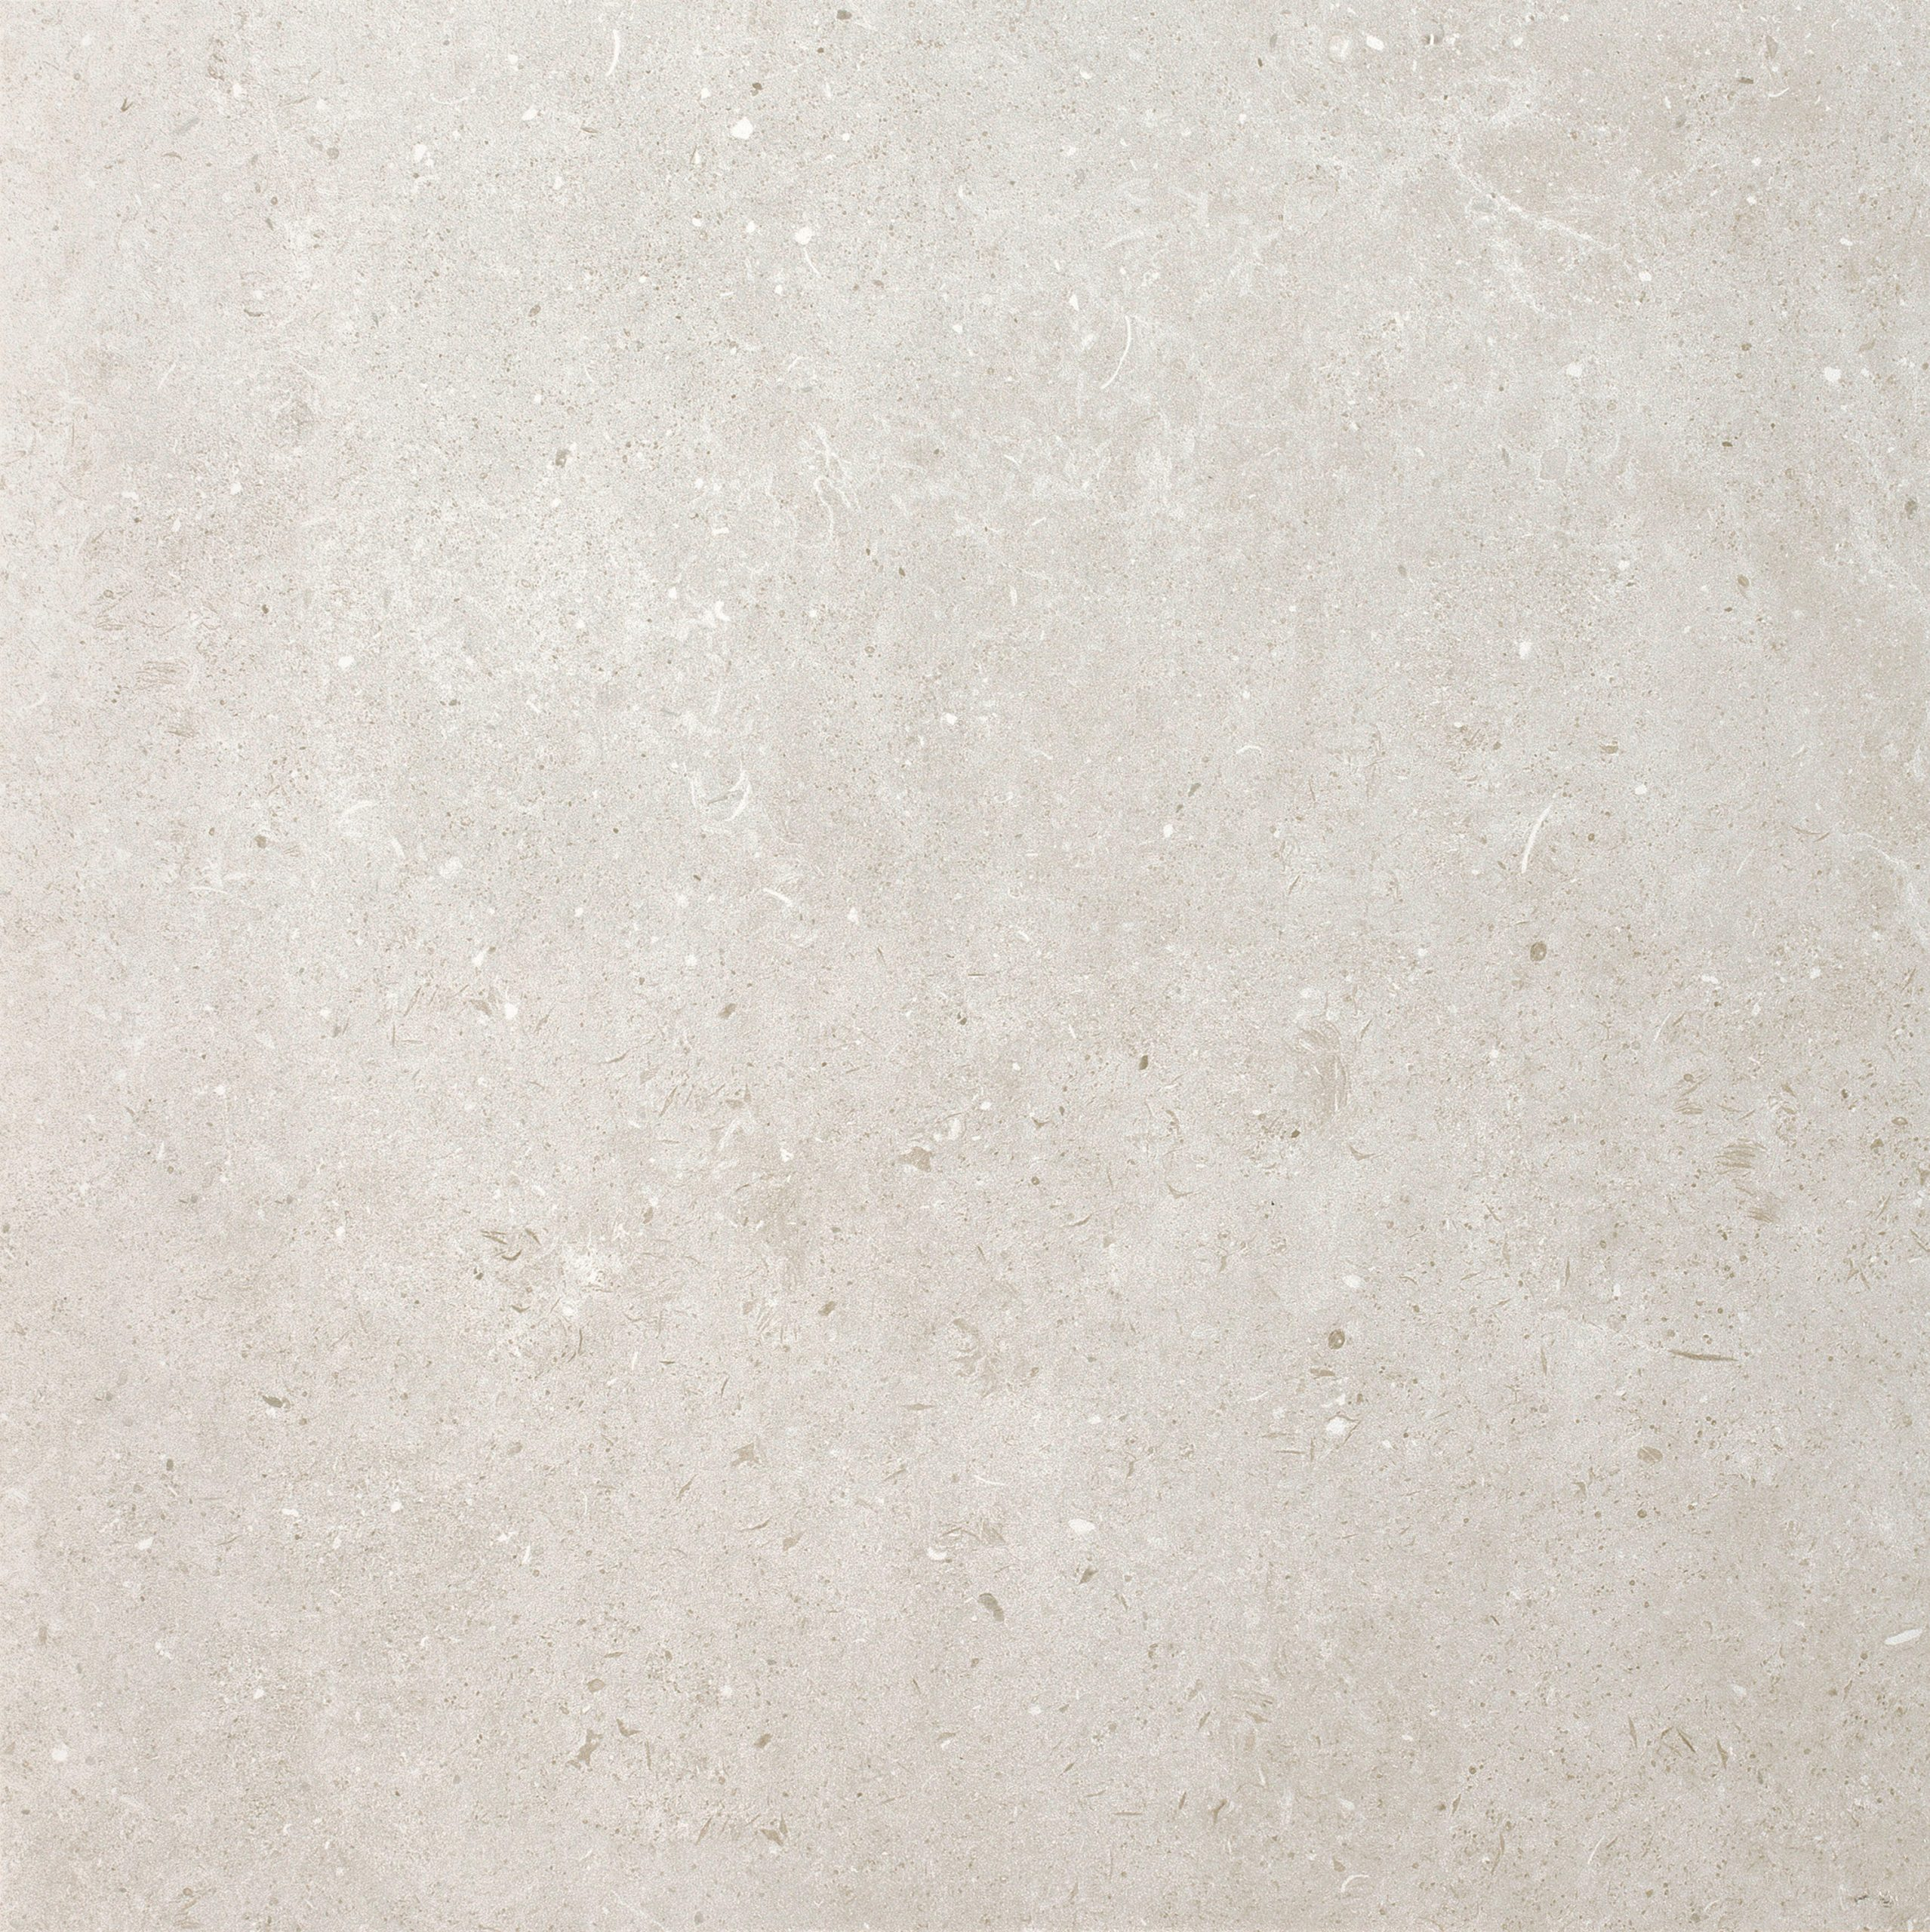 Beren Light Grey Marble Trend Marble Granite Tiles